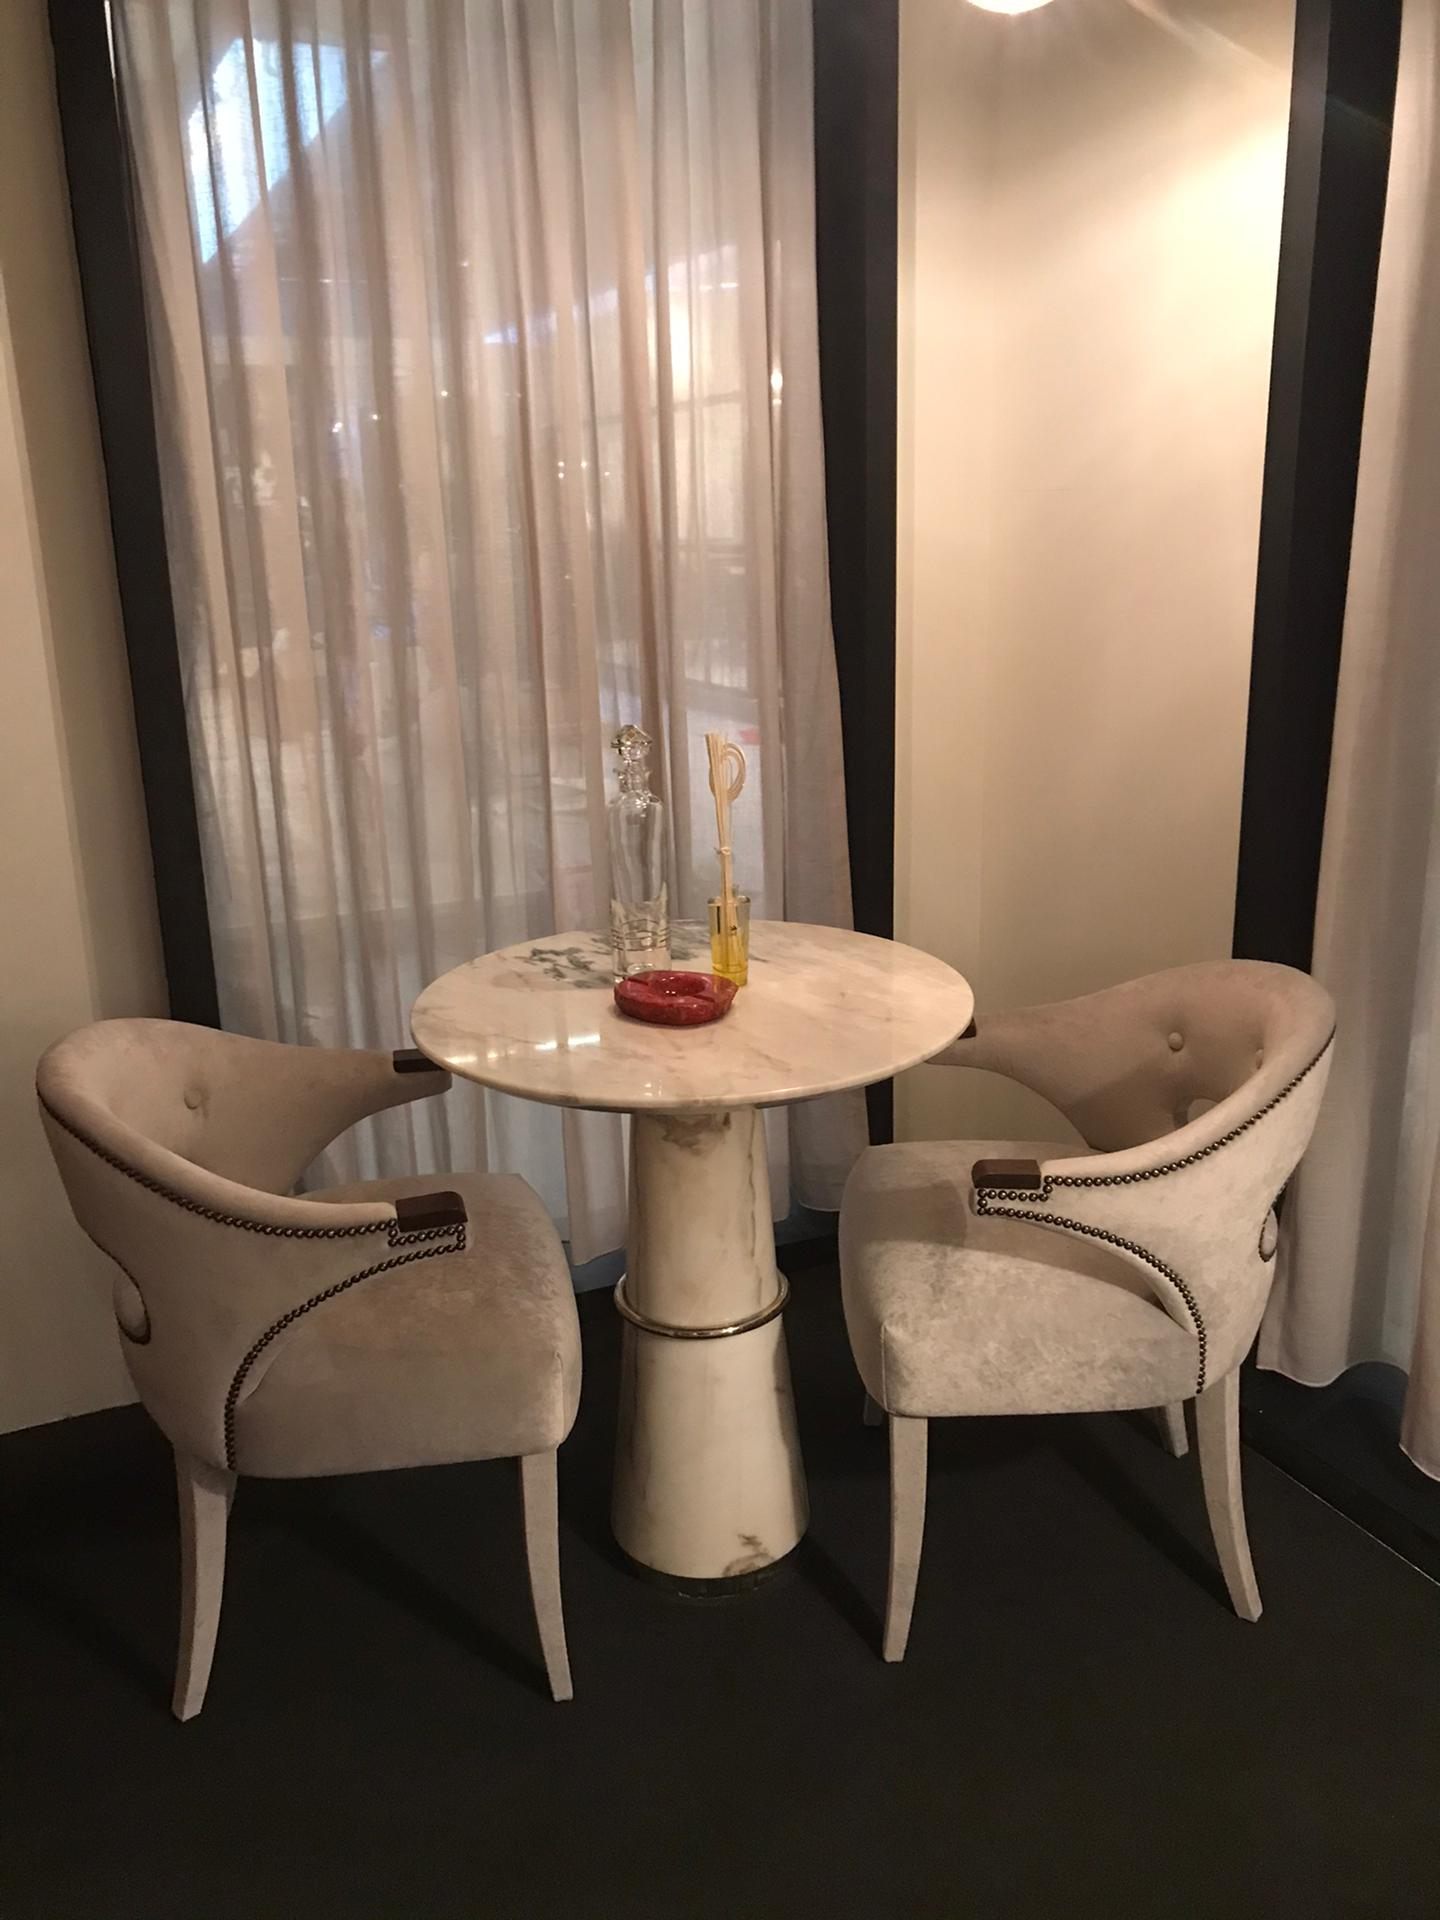 maison et objet 2020 Maison et Objet 2020: Take a Look the Best Chairs! Maison et Objet 2020 Take a Look the Best Chairs 9